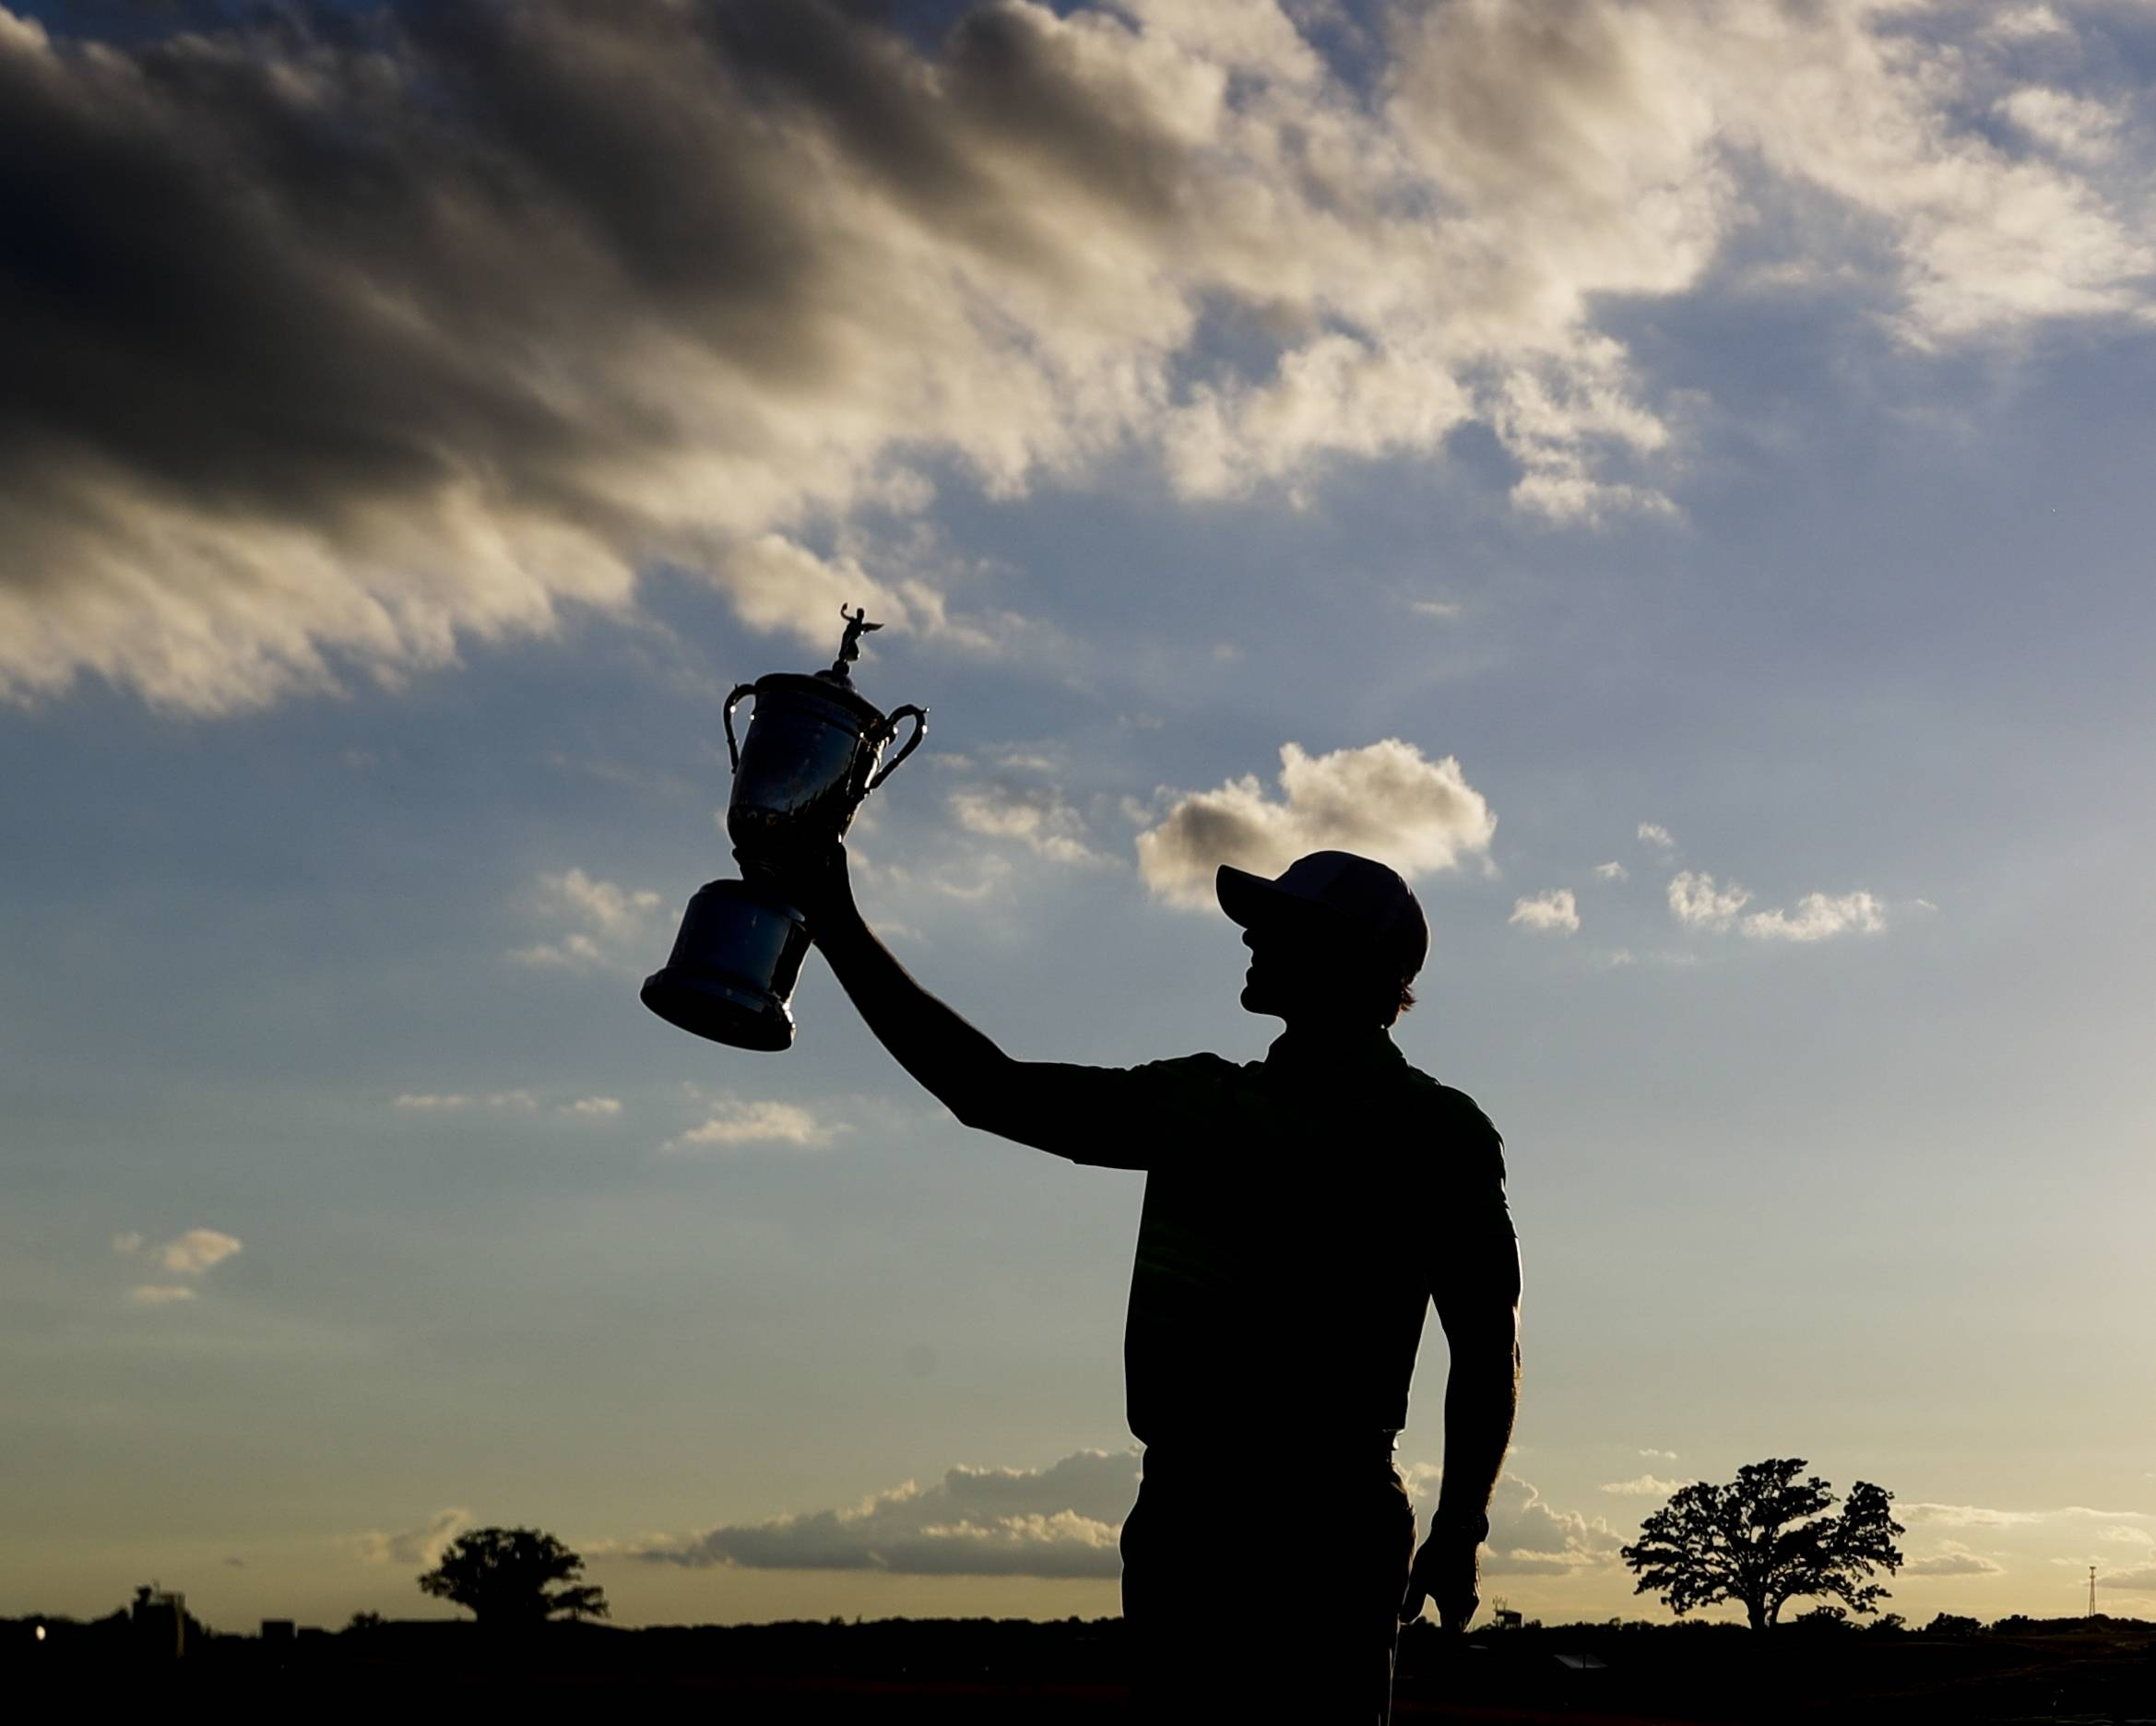 Brooks Koepka poses with the winning trophy after the U.S. Open golf tournament Sunday, June 18, 2017, at Erin Hills in Erin, Wis.